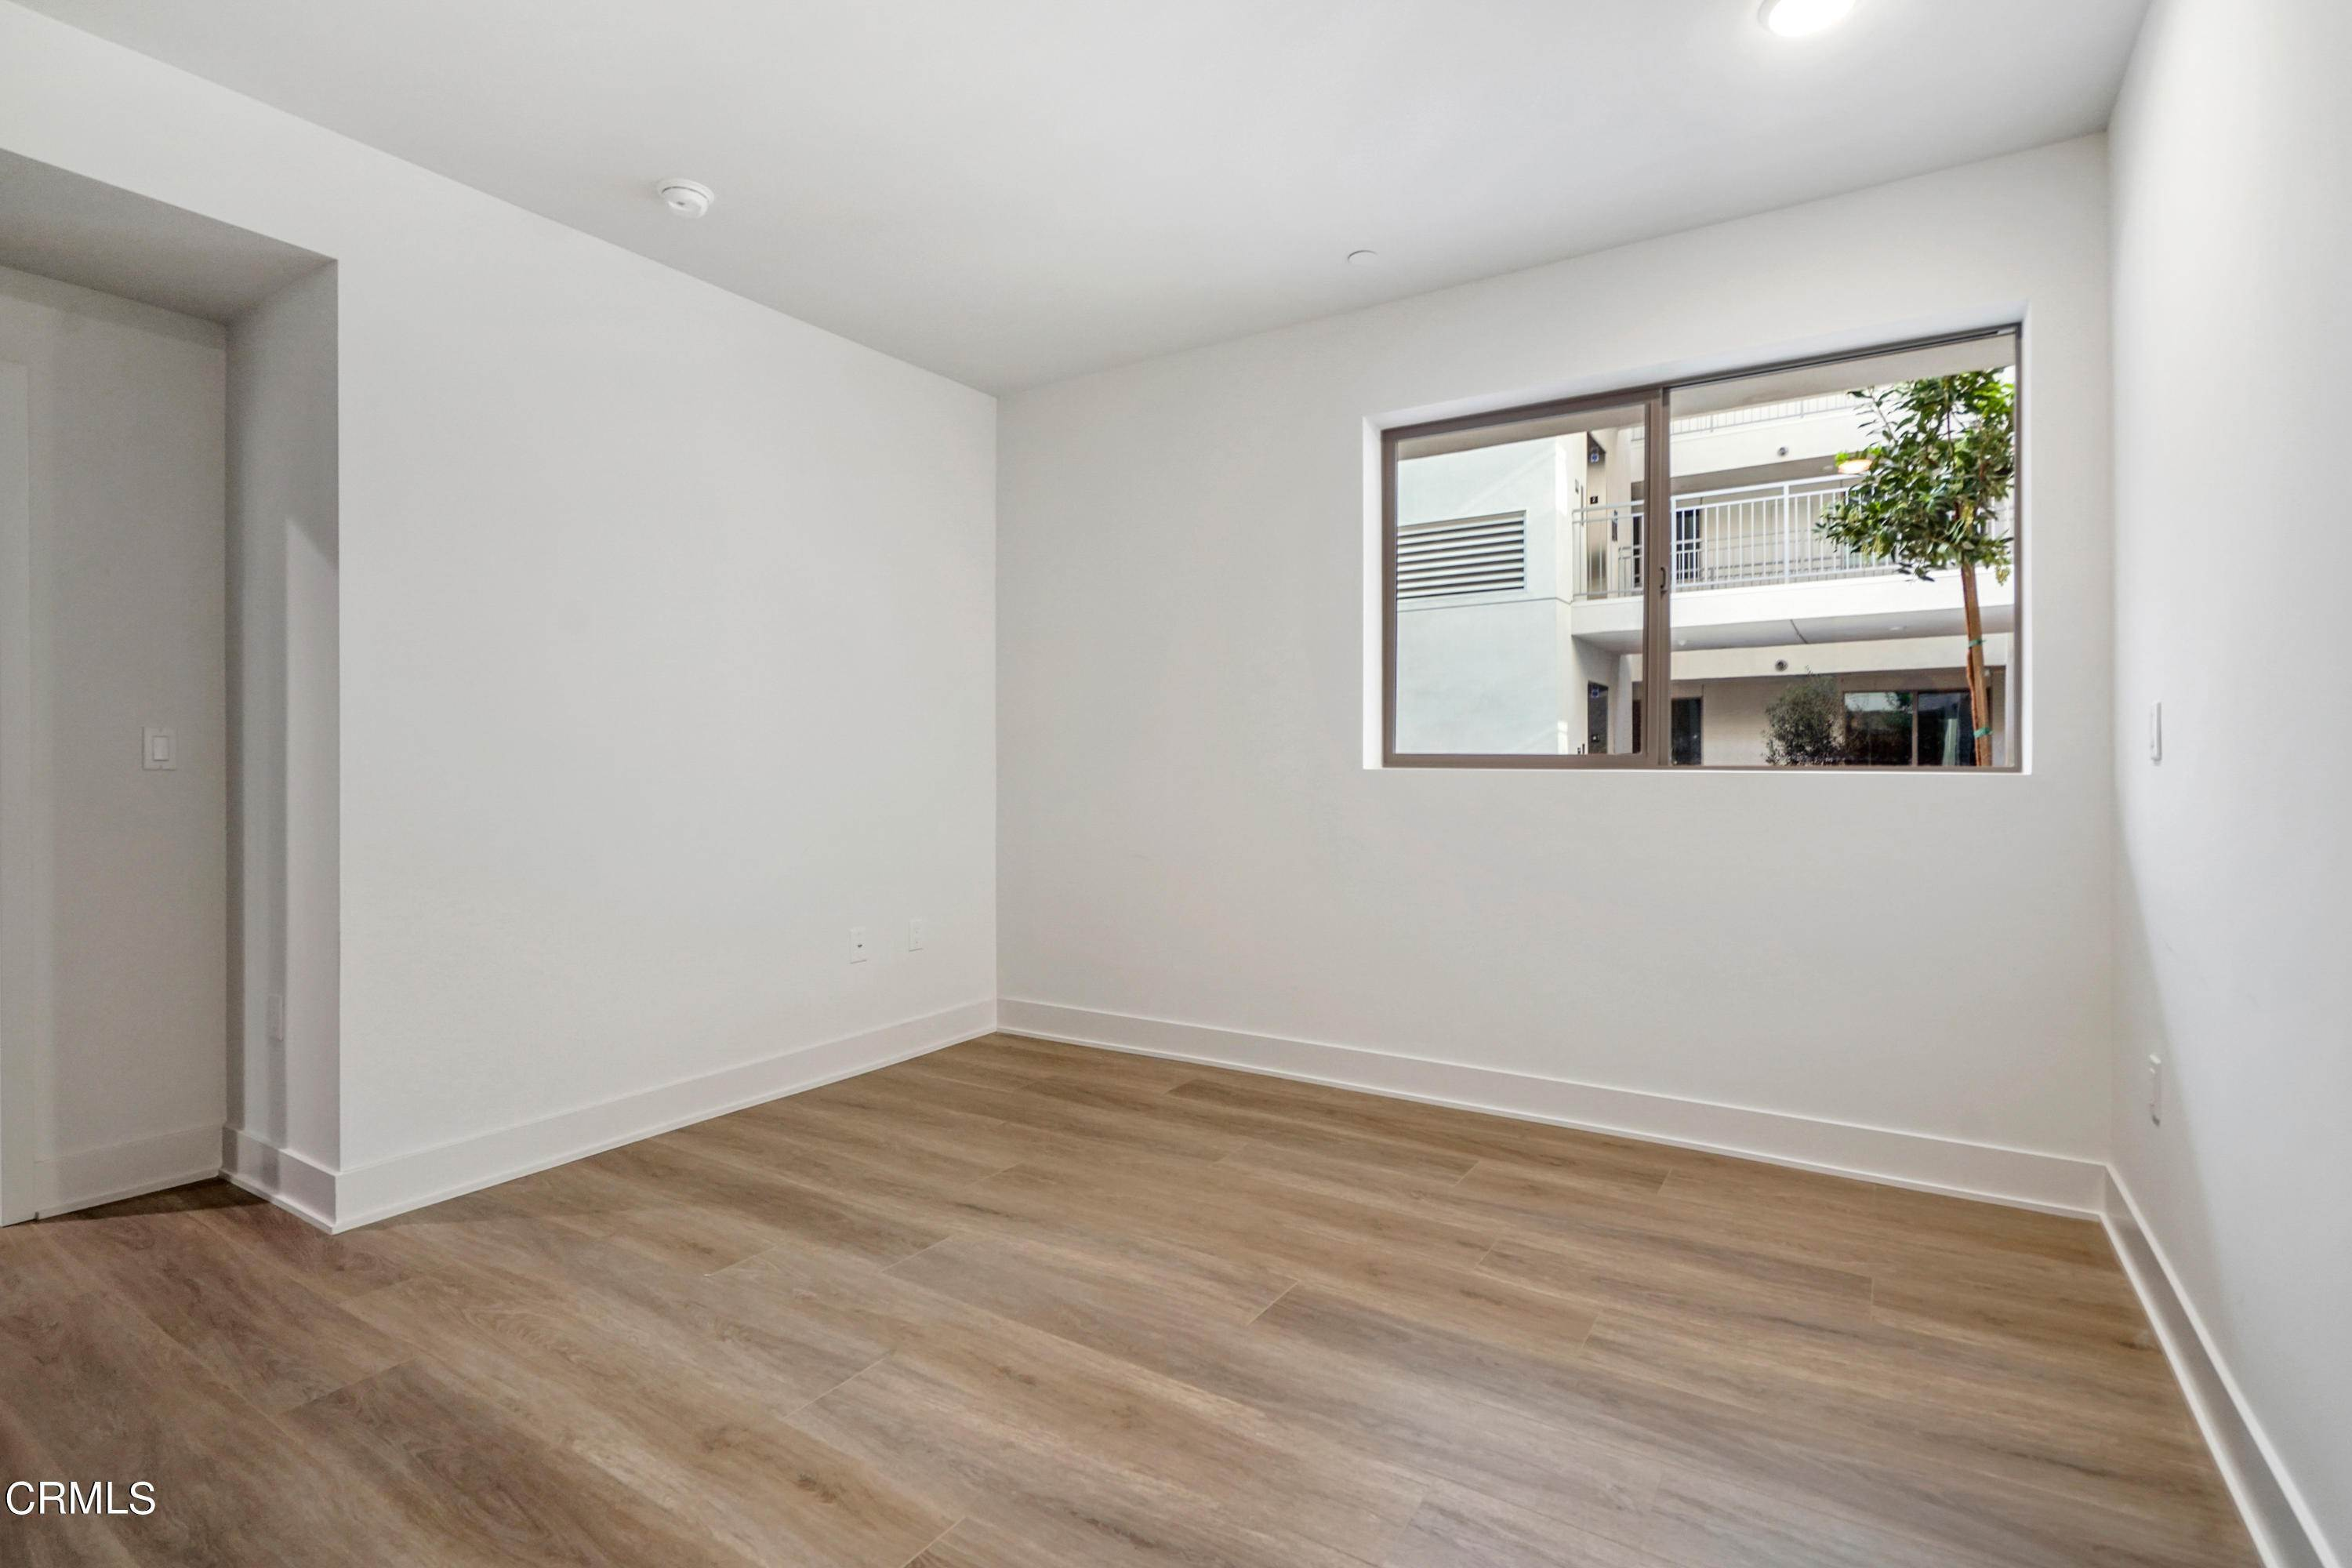 19. Condominiums for Sale at 518 East windsor Road 106 #106 518 East windsor Road 106 Glendale, California 91205 United States